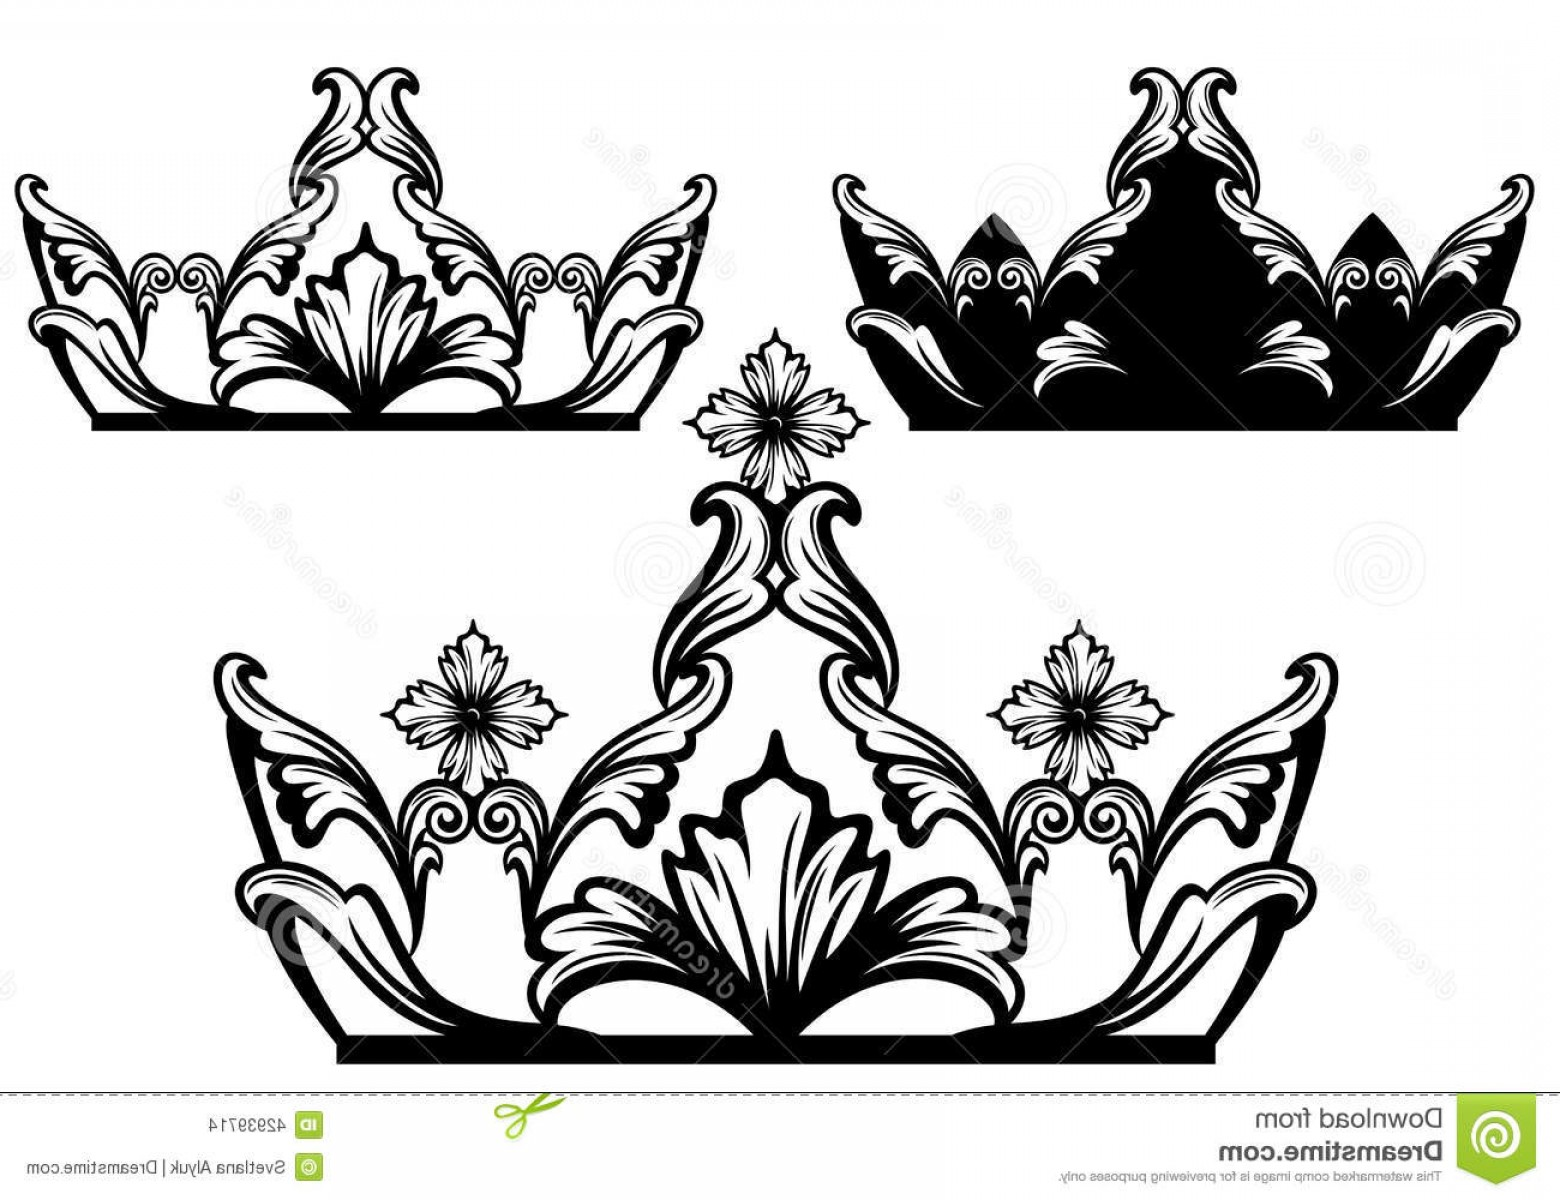 Crown White Outline Vector: Stock Illustration Royal Crown Black White Design Luxury Jewelry Set Vector Collection Image